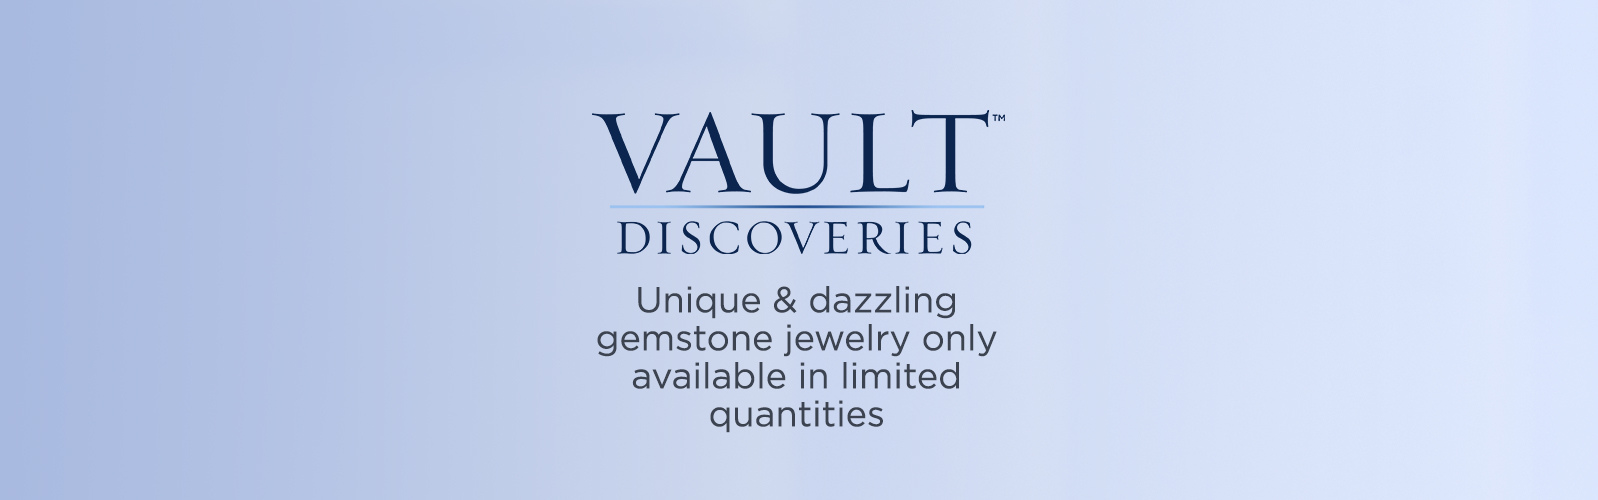 Vault Discoveries. Unique & dazzling gemstone jewelry only available in limited quantities